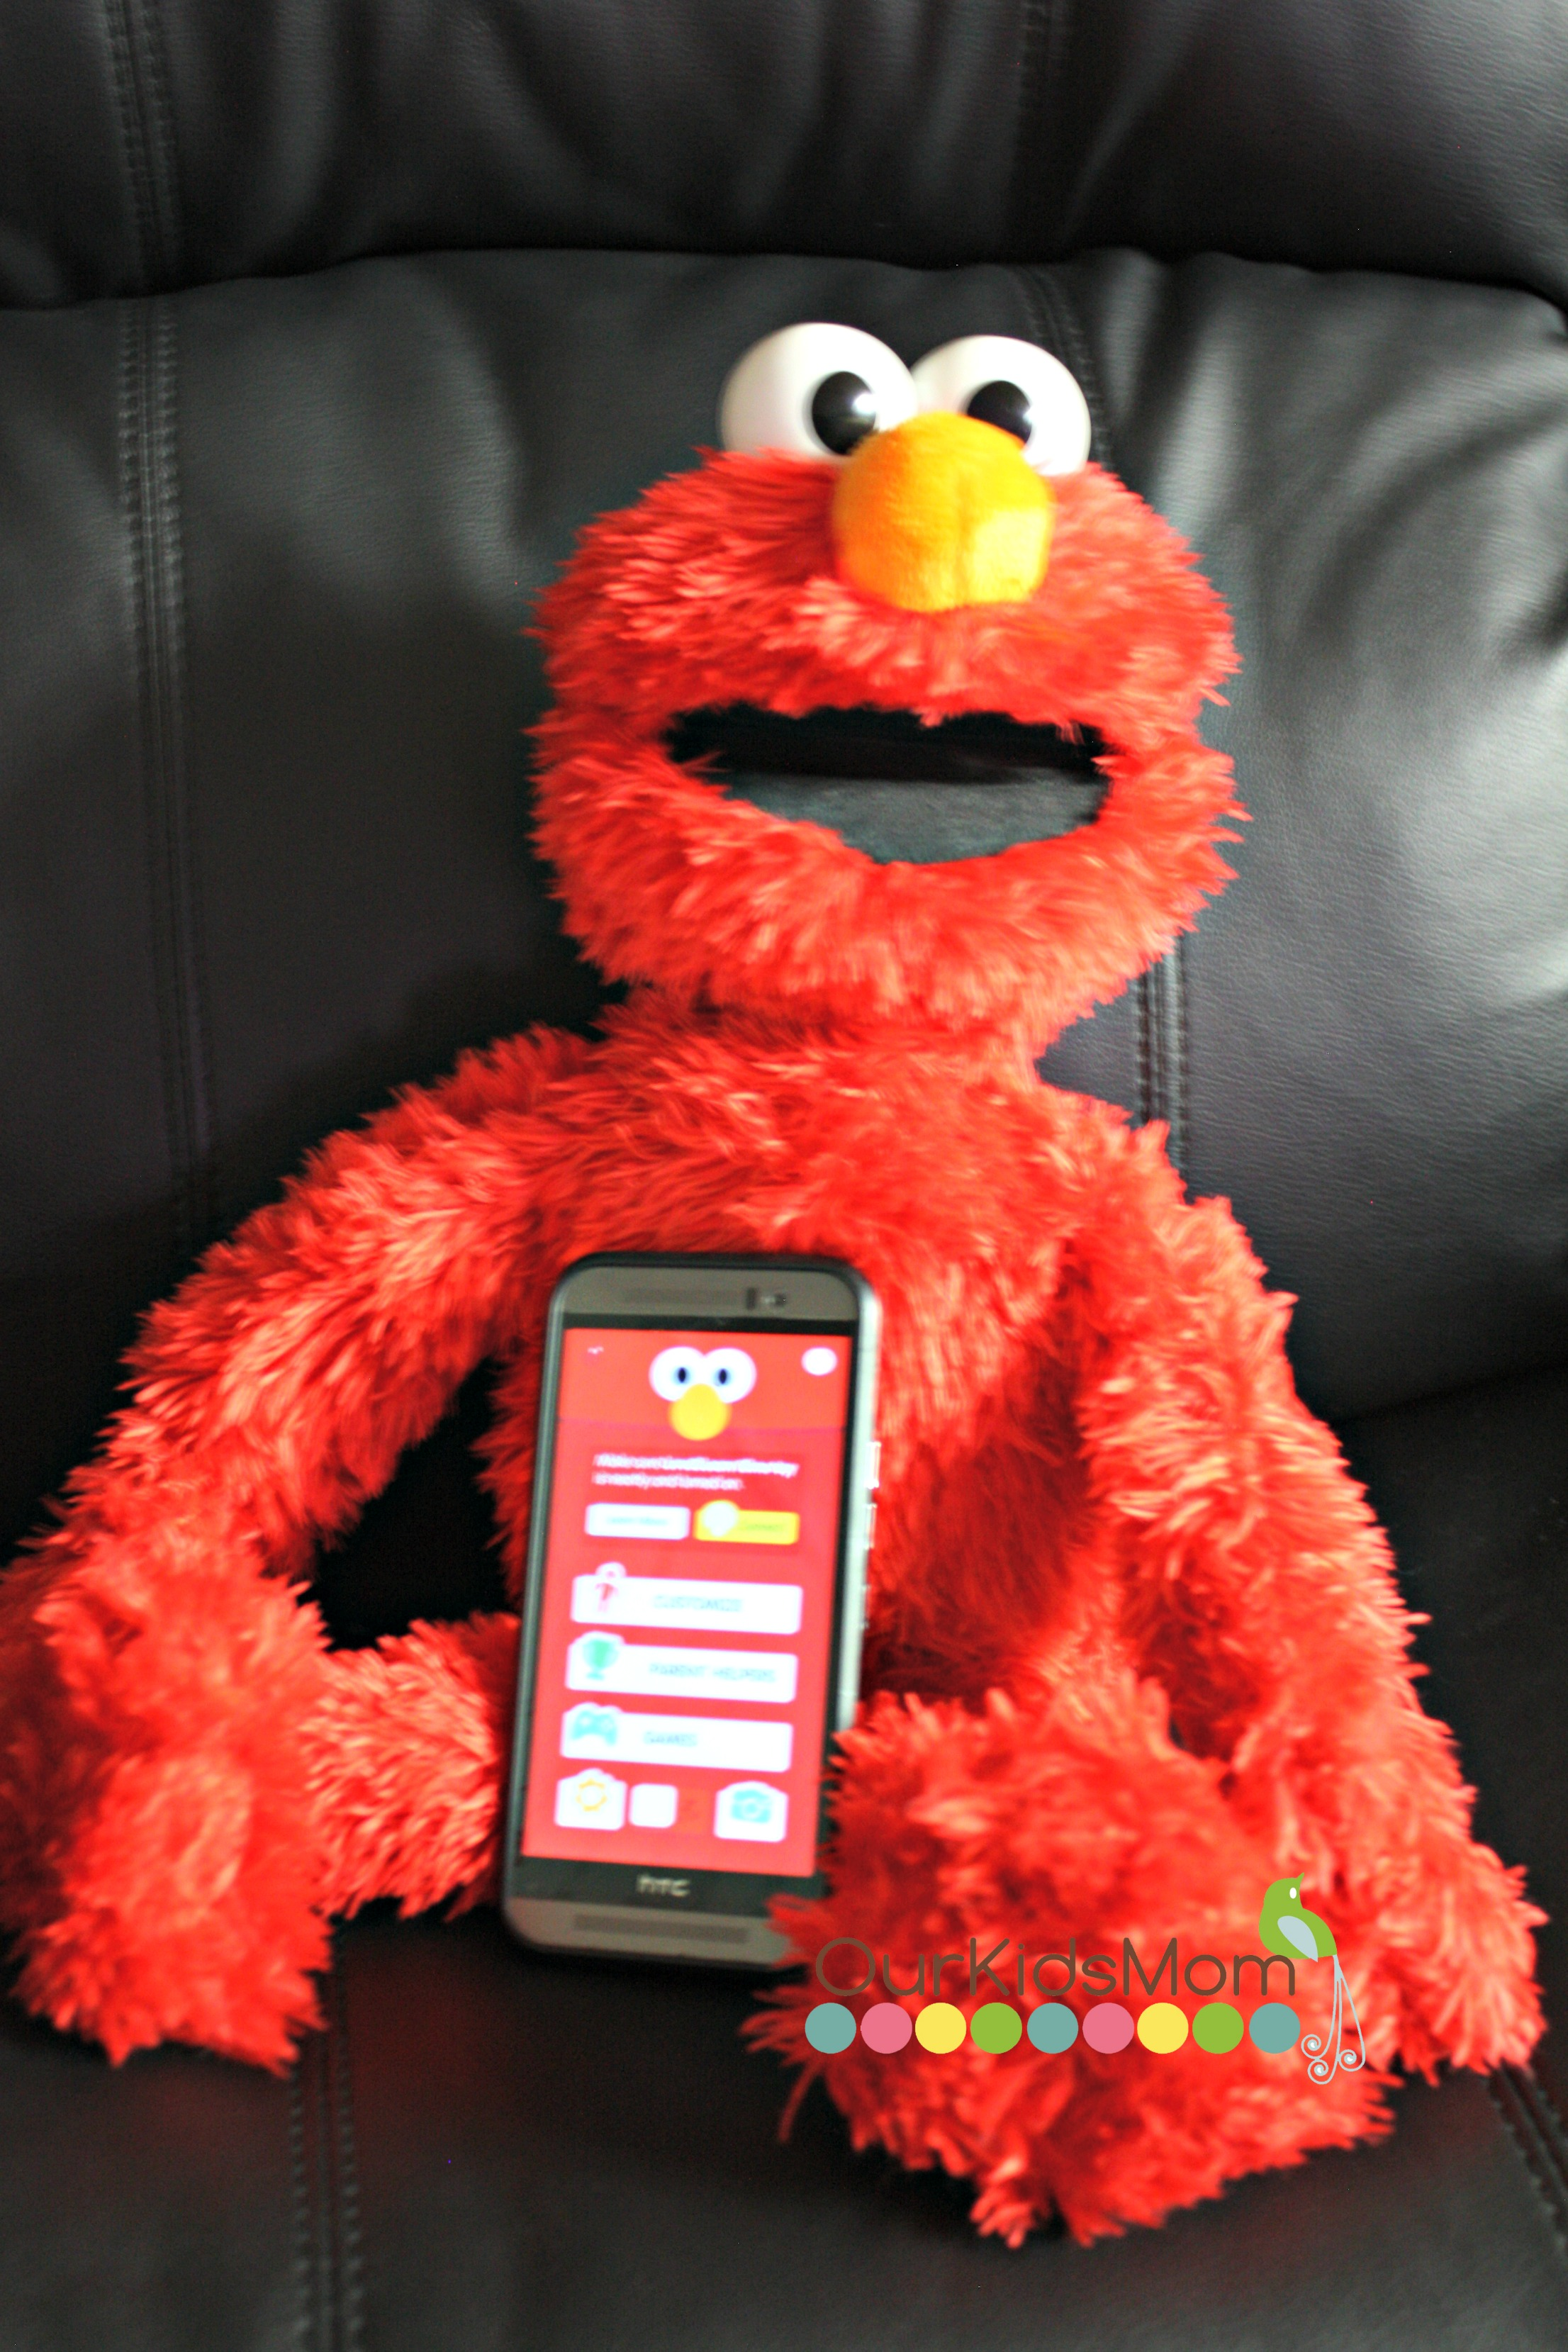 Elmo with the App